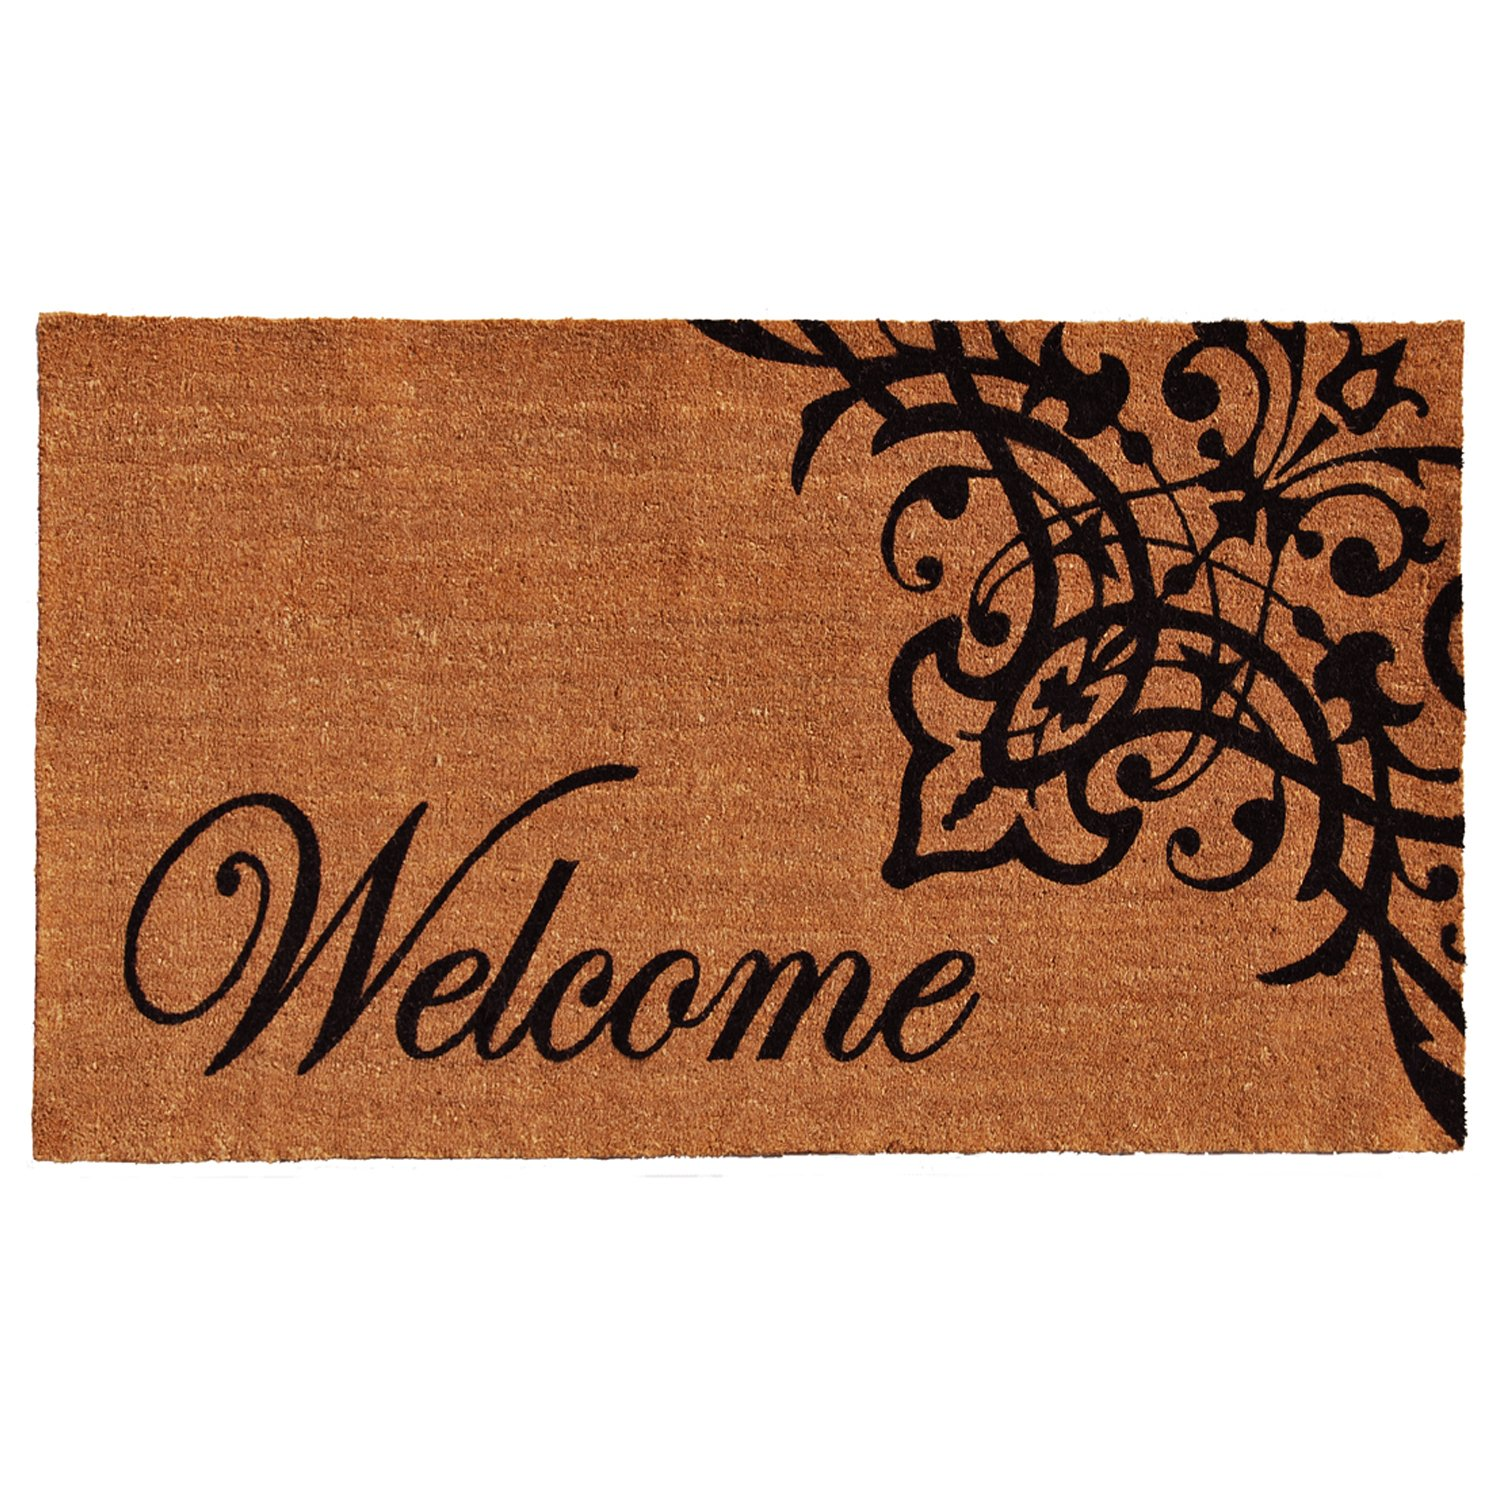 Home & More 121352436 Scroll Welcome Doormat, 24'' x 36'' x 0.60'', Natural/Black